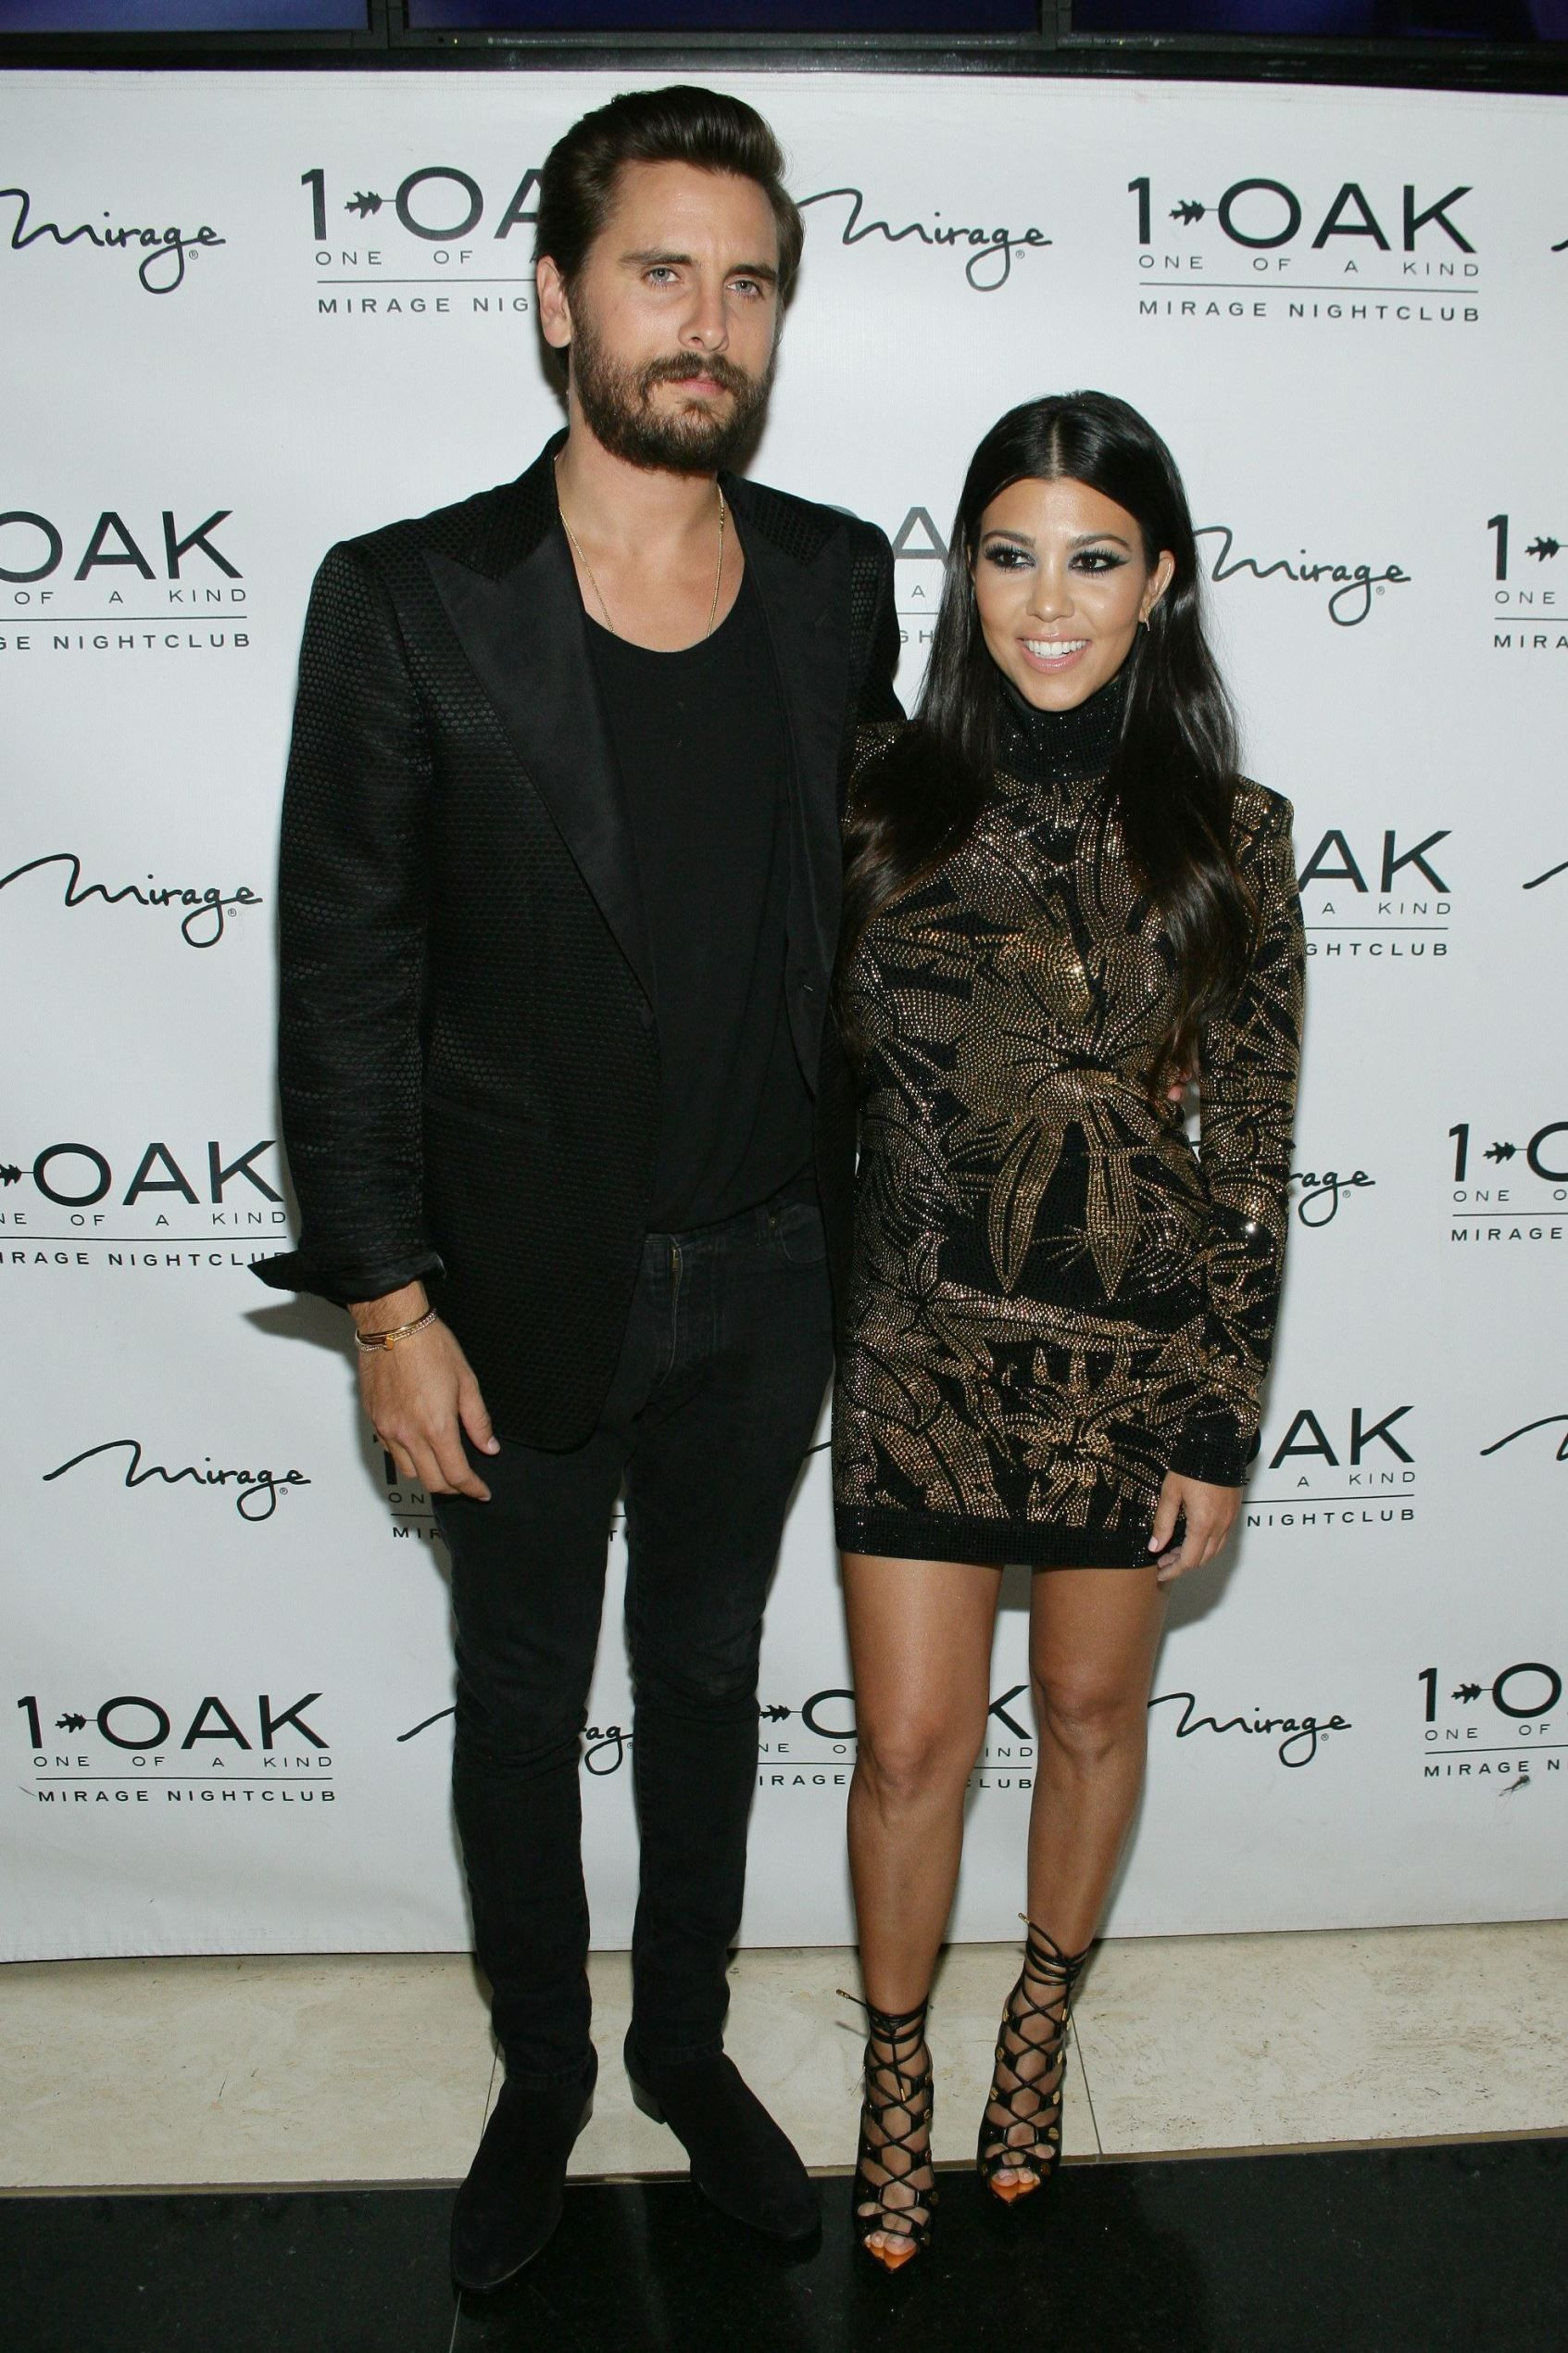 Kourtney Kardashian dumps Scott Disick: Report - Everett/REX Shutterstock/Rex USA